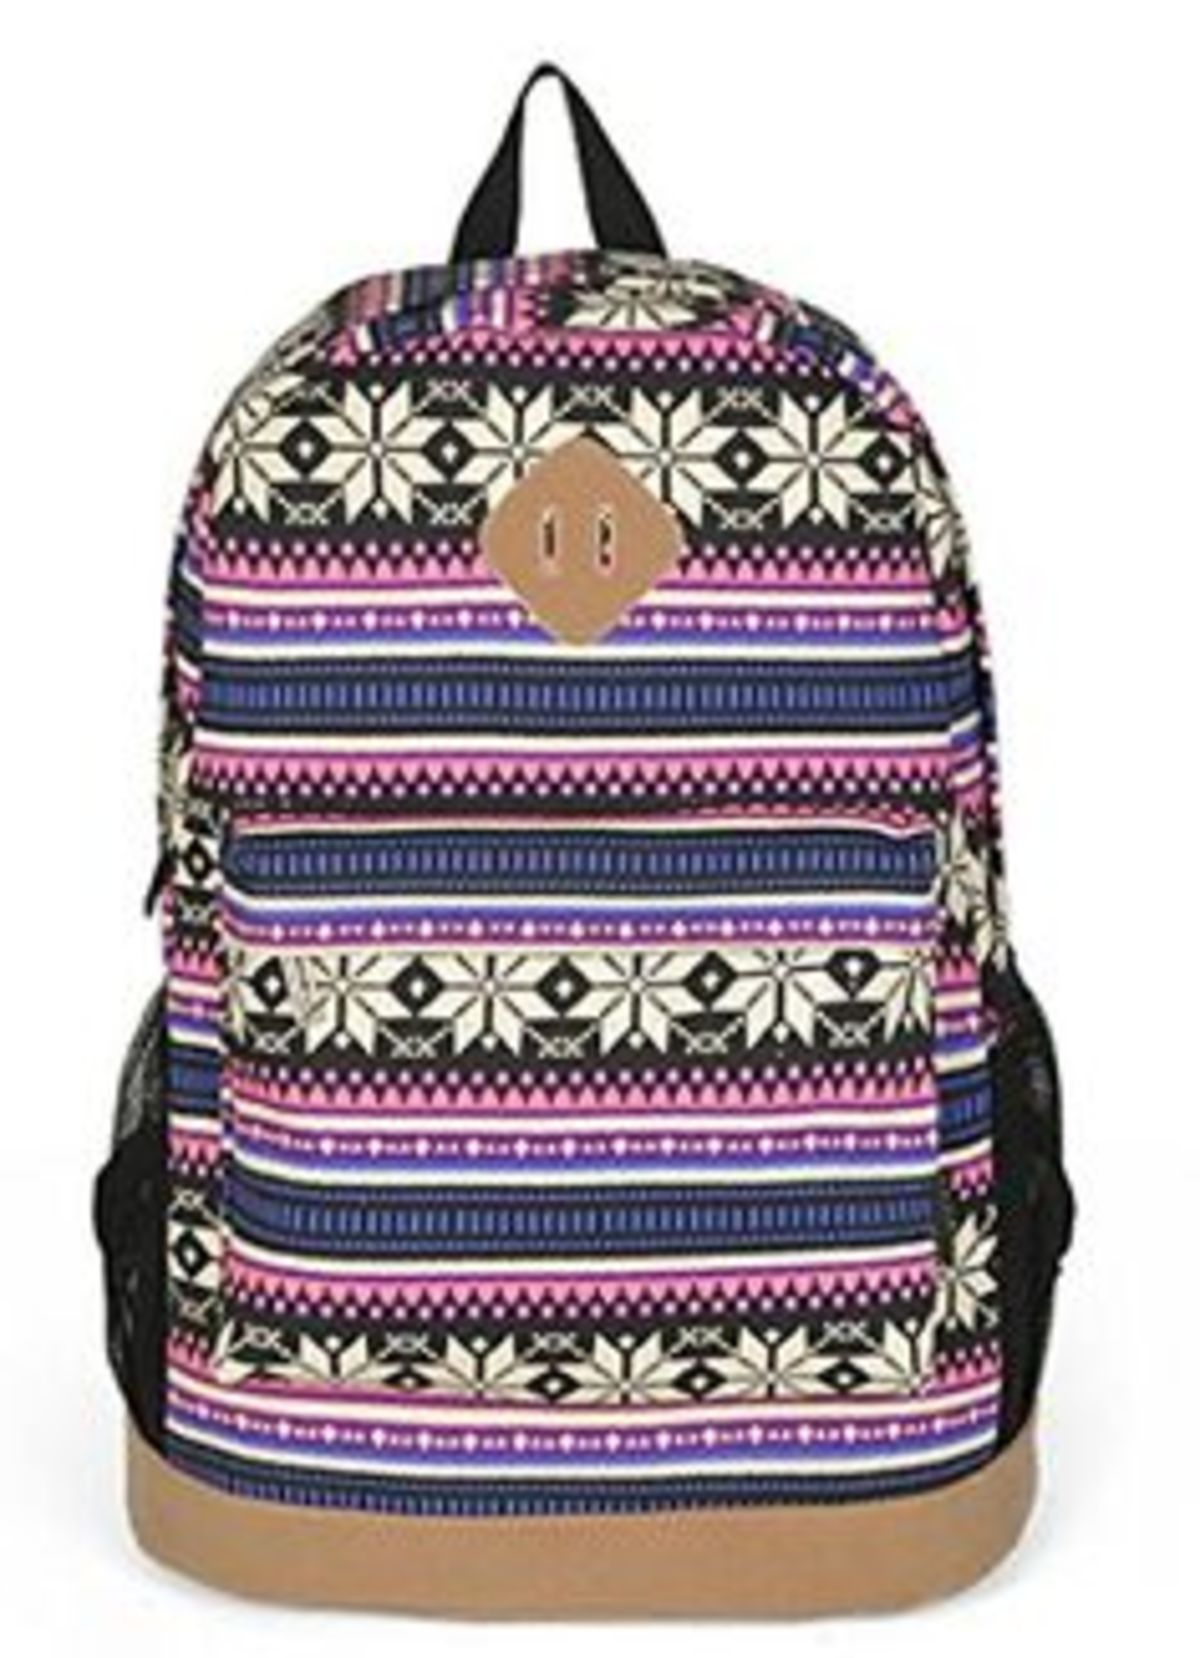 Headline for Best Stylish Backpacks For College Girls With A Laptop Compartment On Sale - Reviews And Ratings